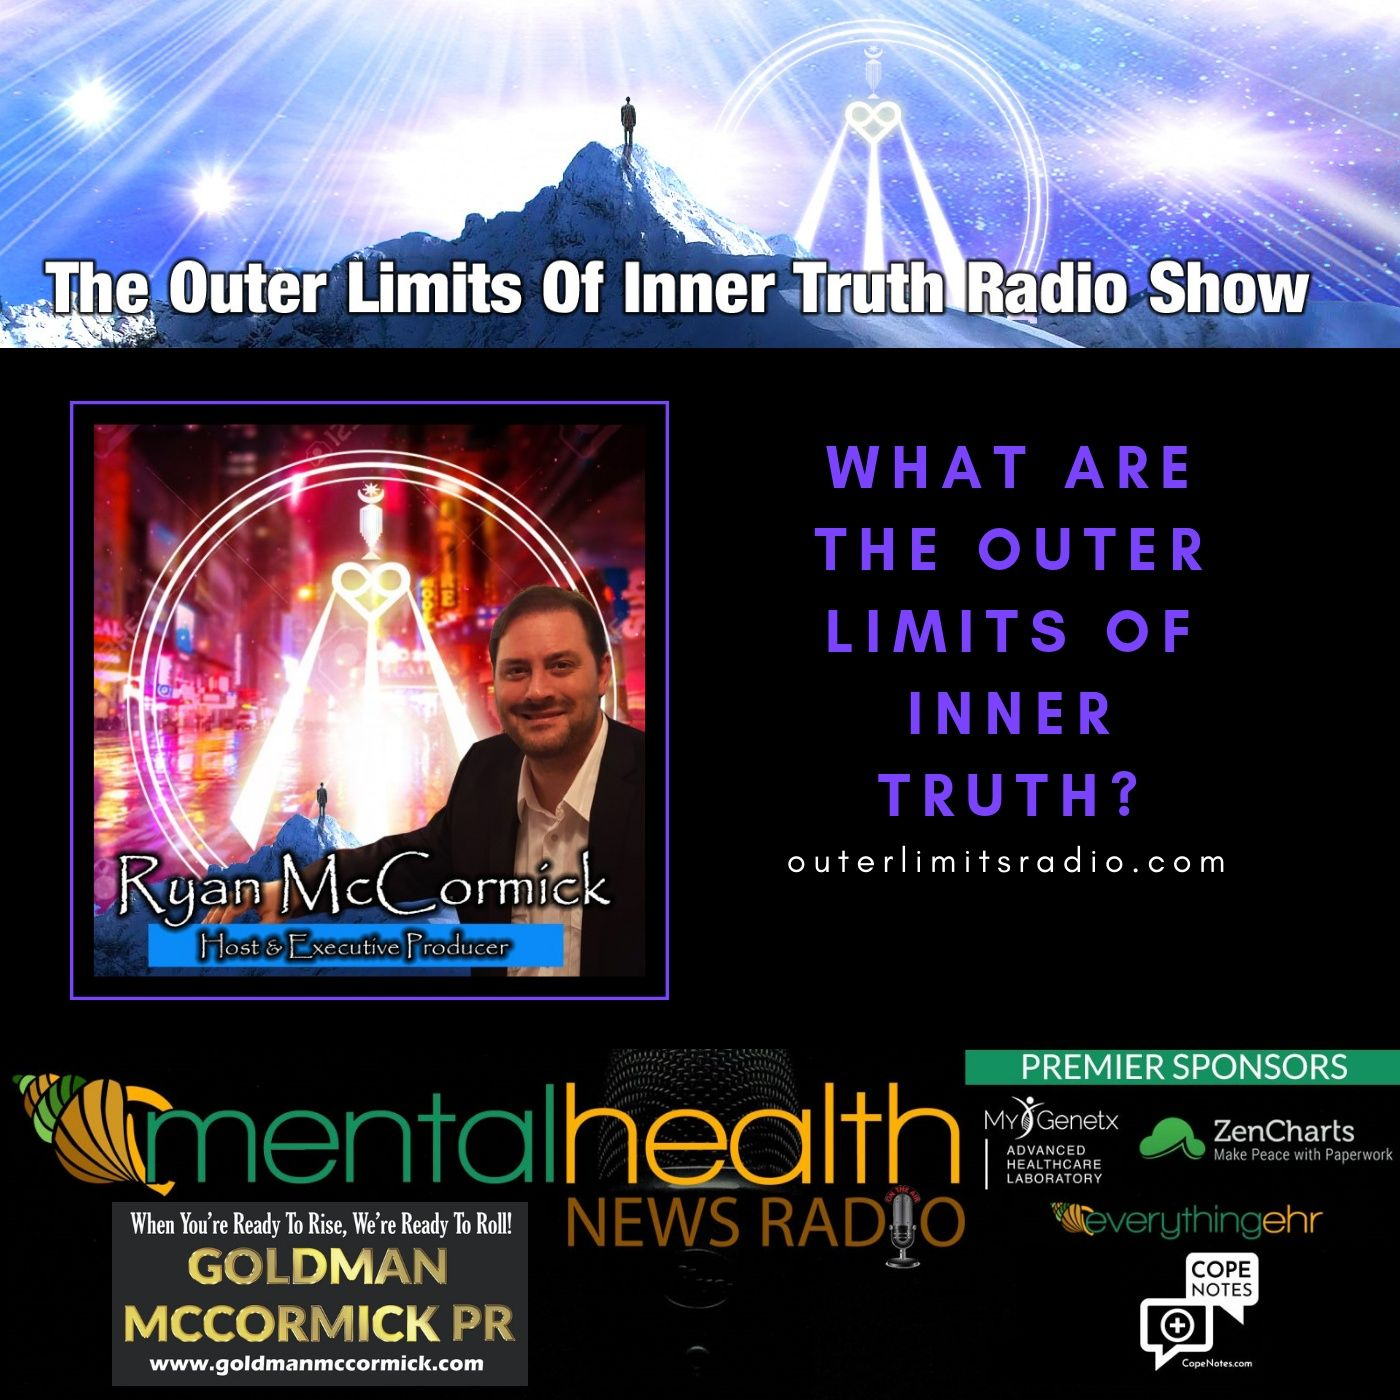 Mental Health News Radio - Outer Limits of Inner Truth with Ryan McCormick